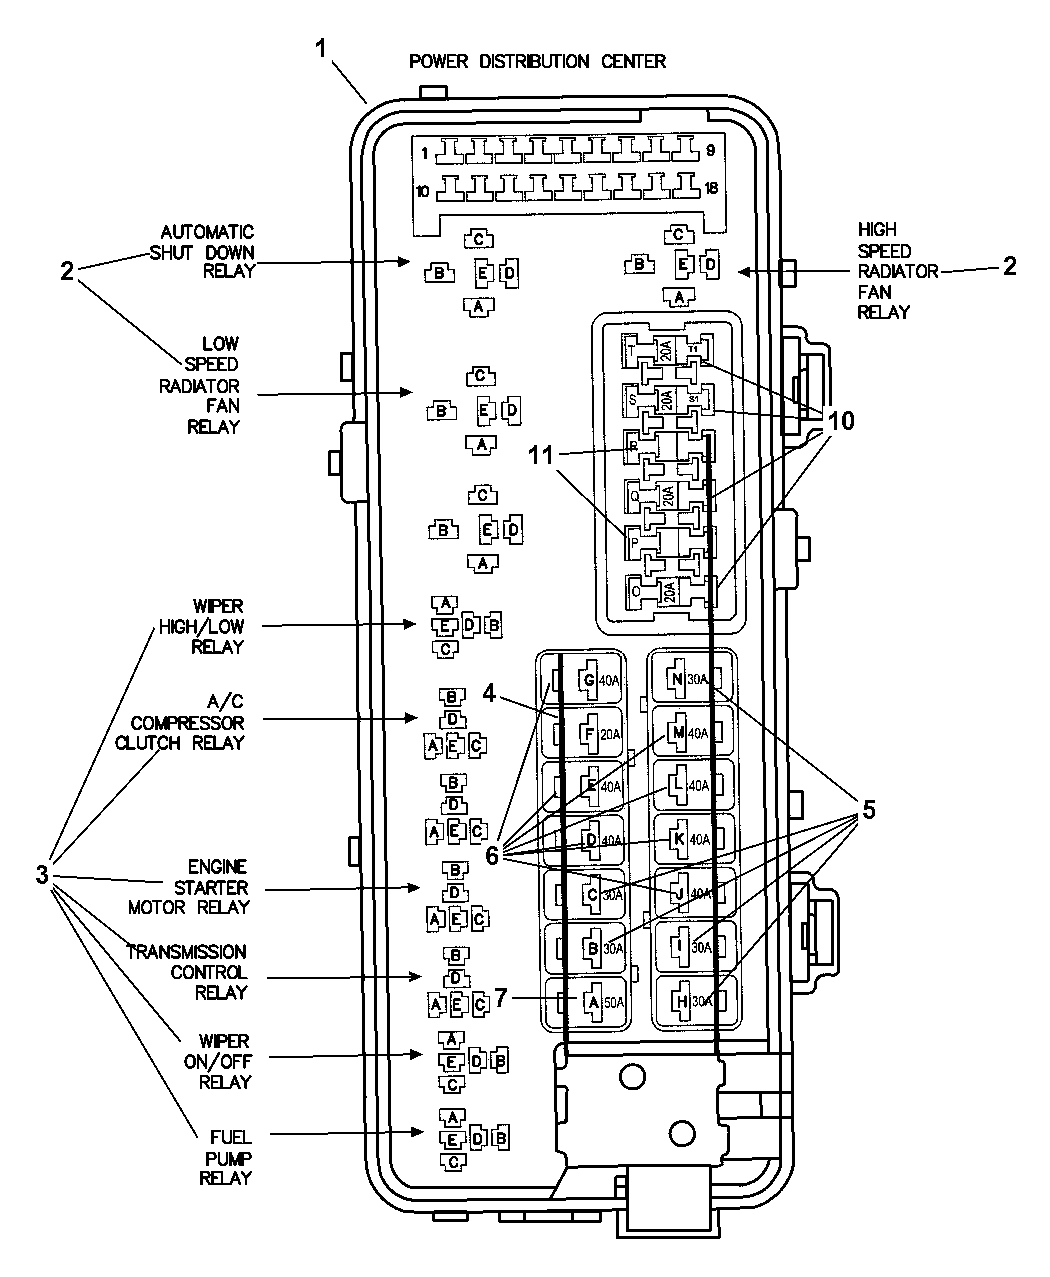 2004 Dodge Intrepid Fuse Box Diagram